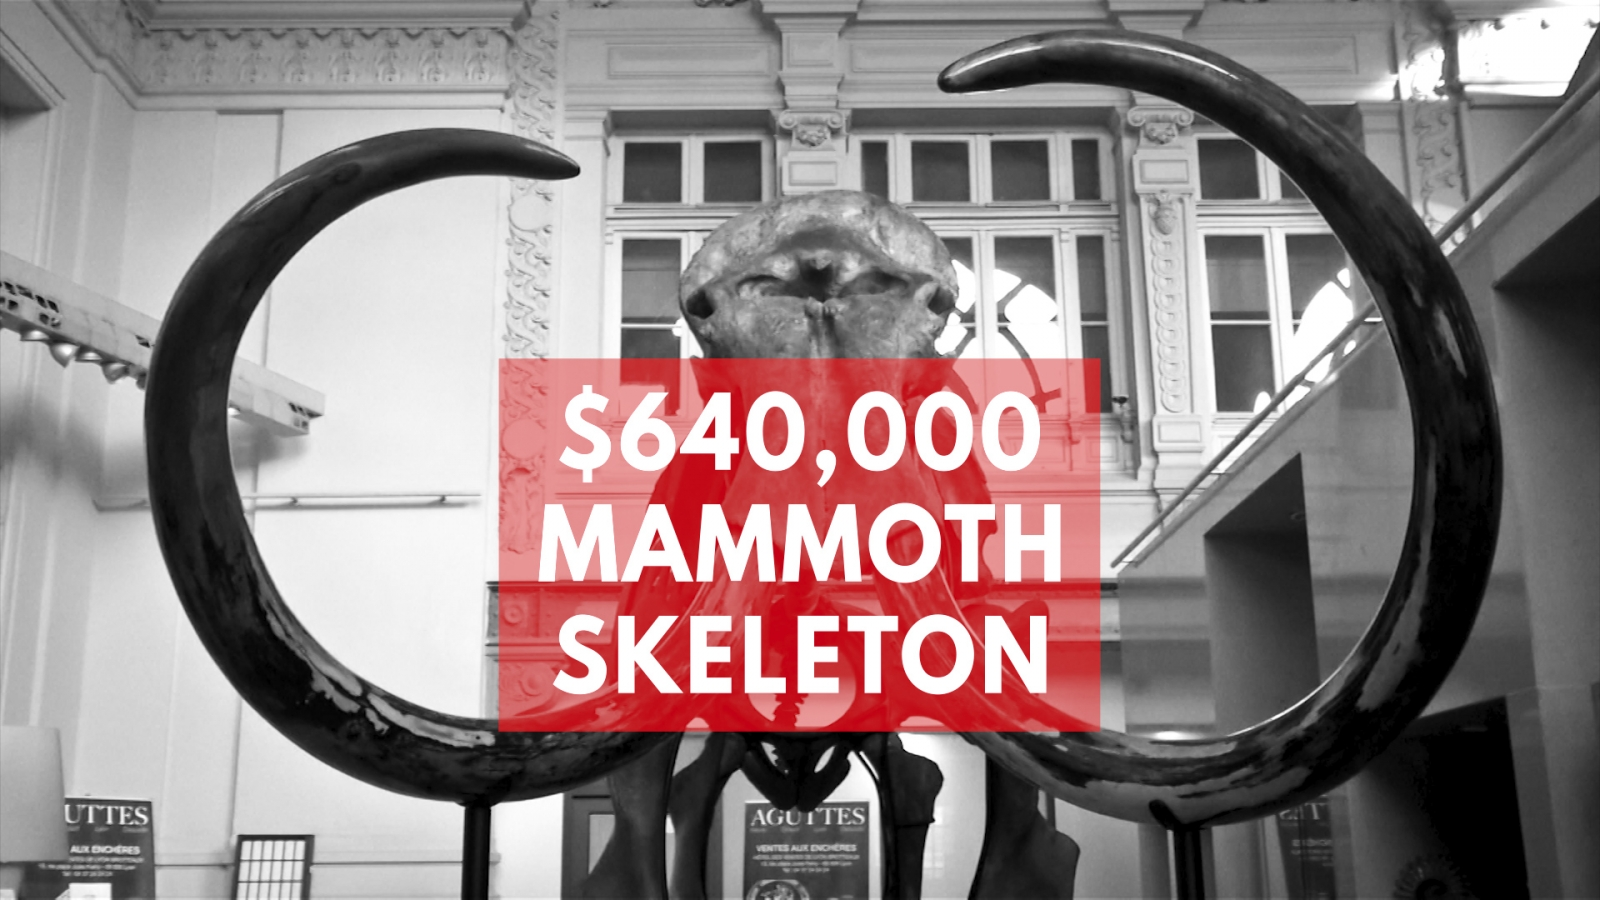 Ancient woolly mammoth skeleton sells for record price in France